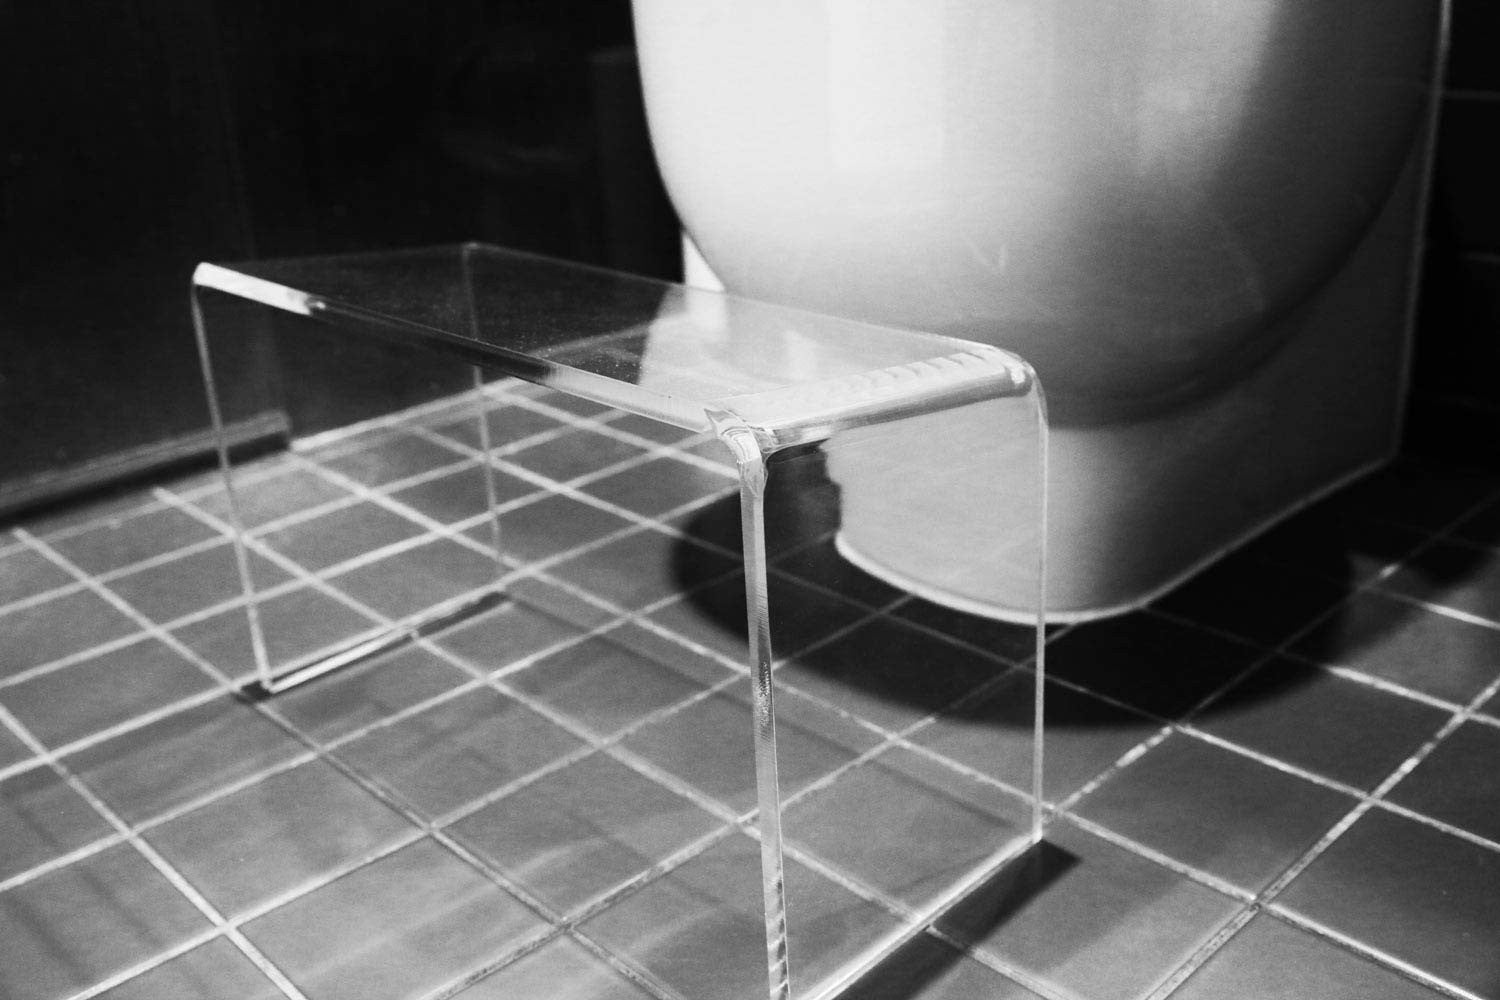 PROPPR CONCEALR invisible toilet stool